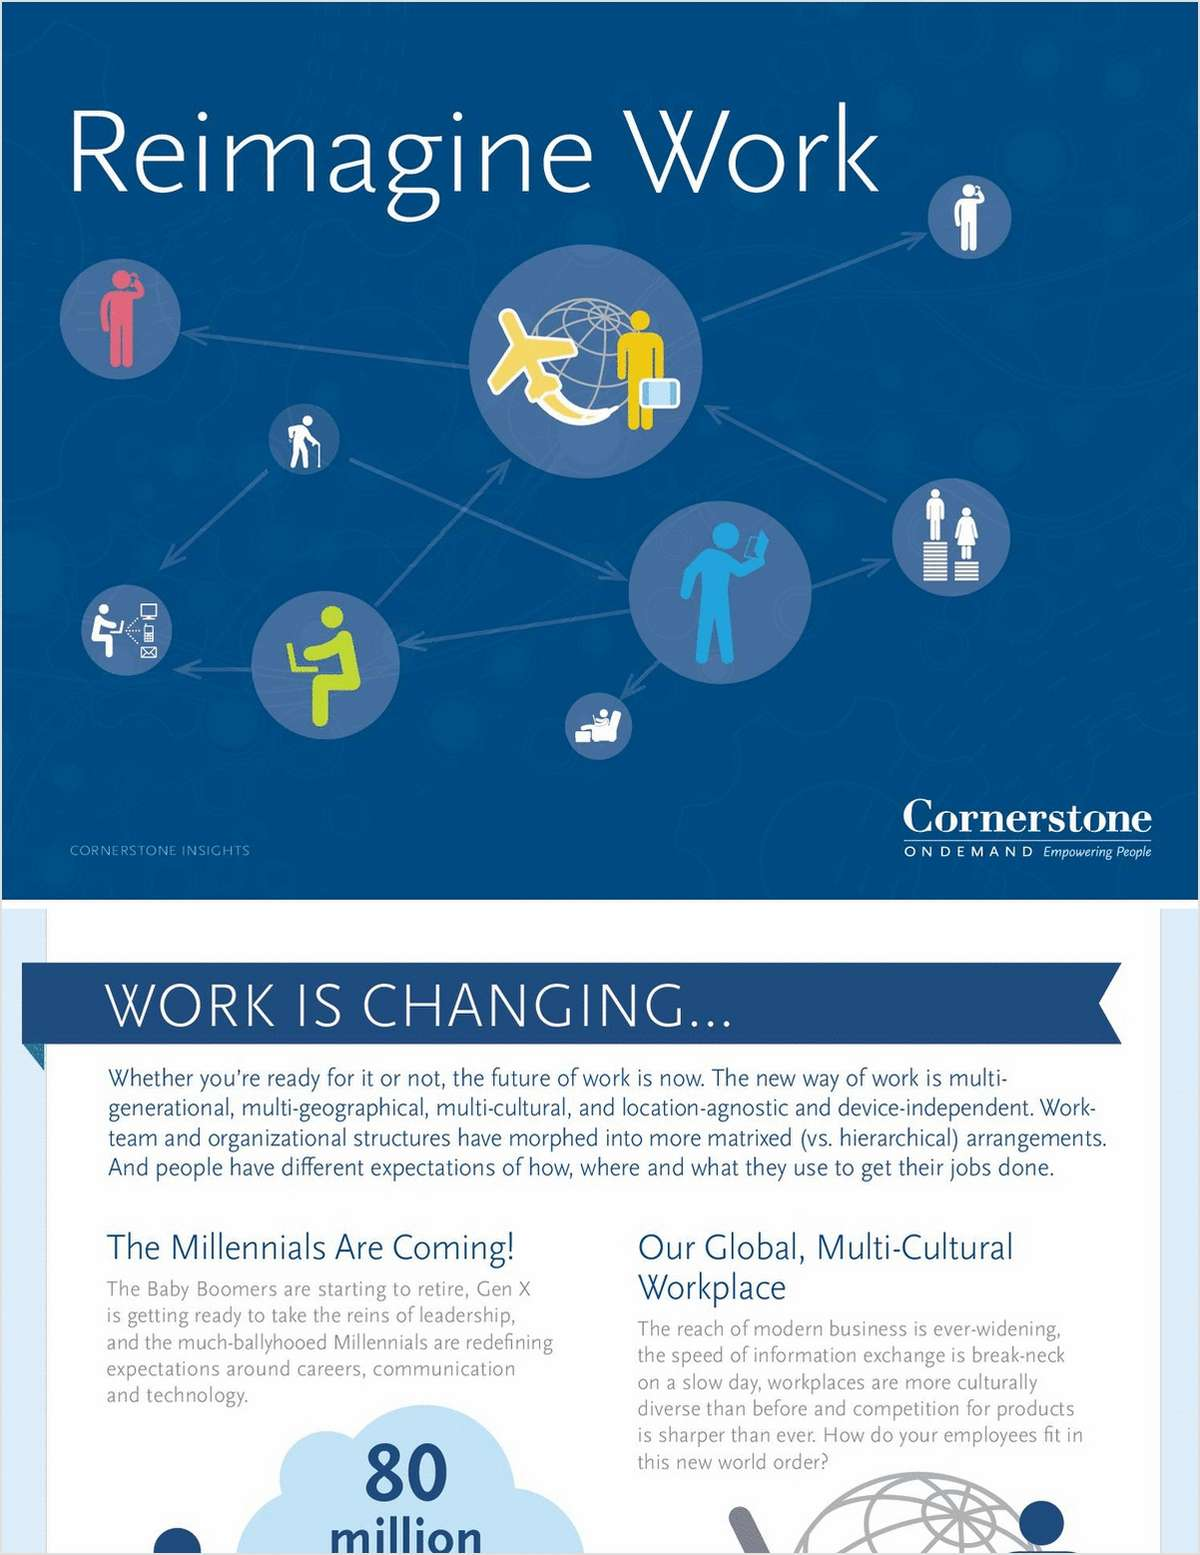 Reimagine Work